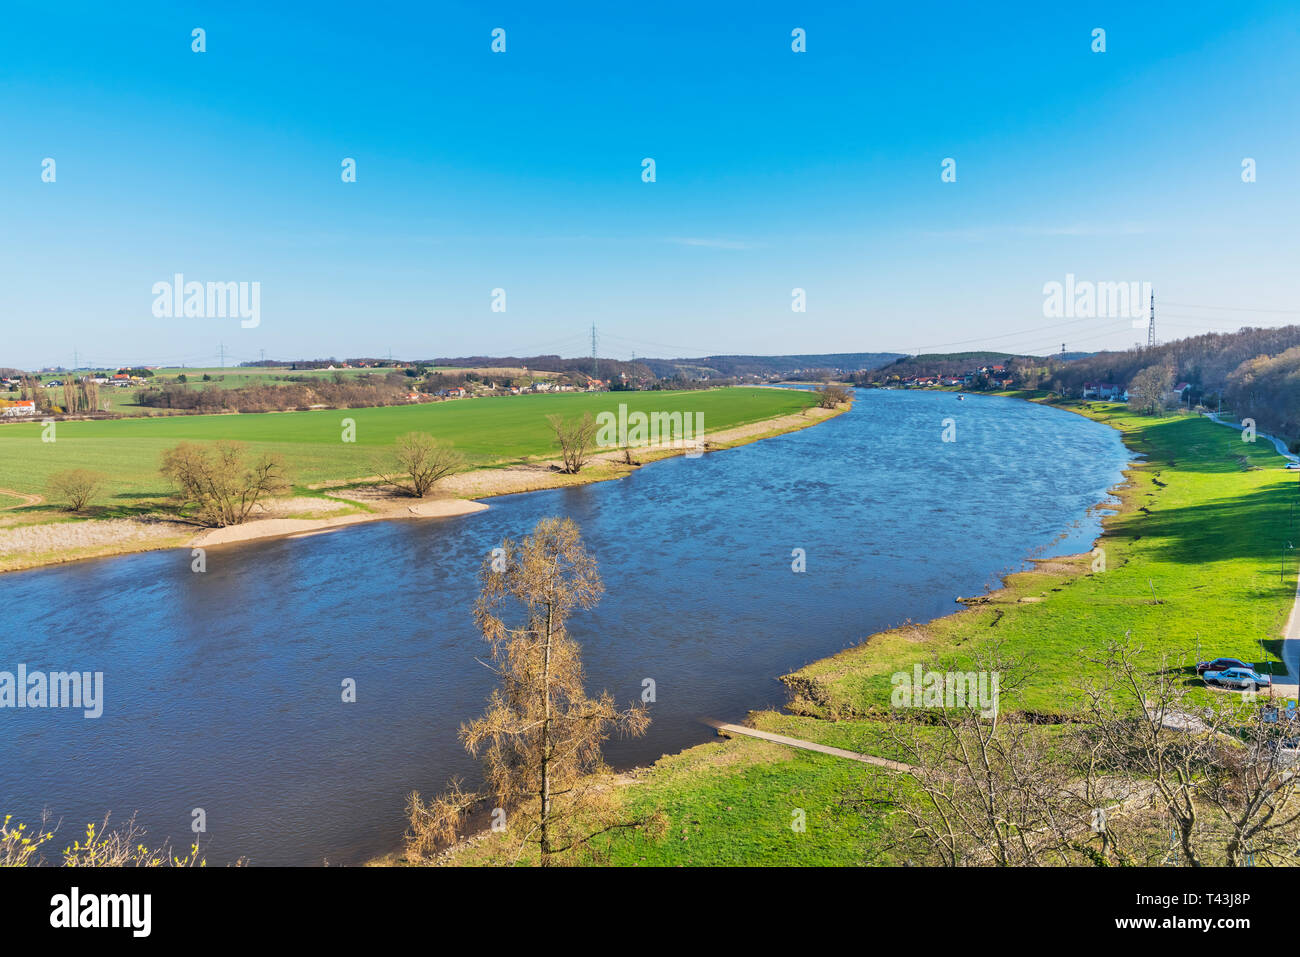 The river Elbe in spring in the district of Meissen, Saxony, Germany, Europe - Stock Image